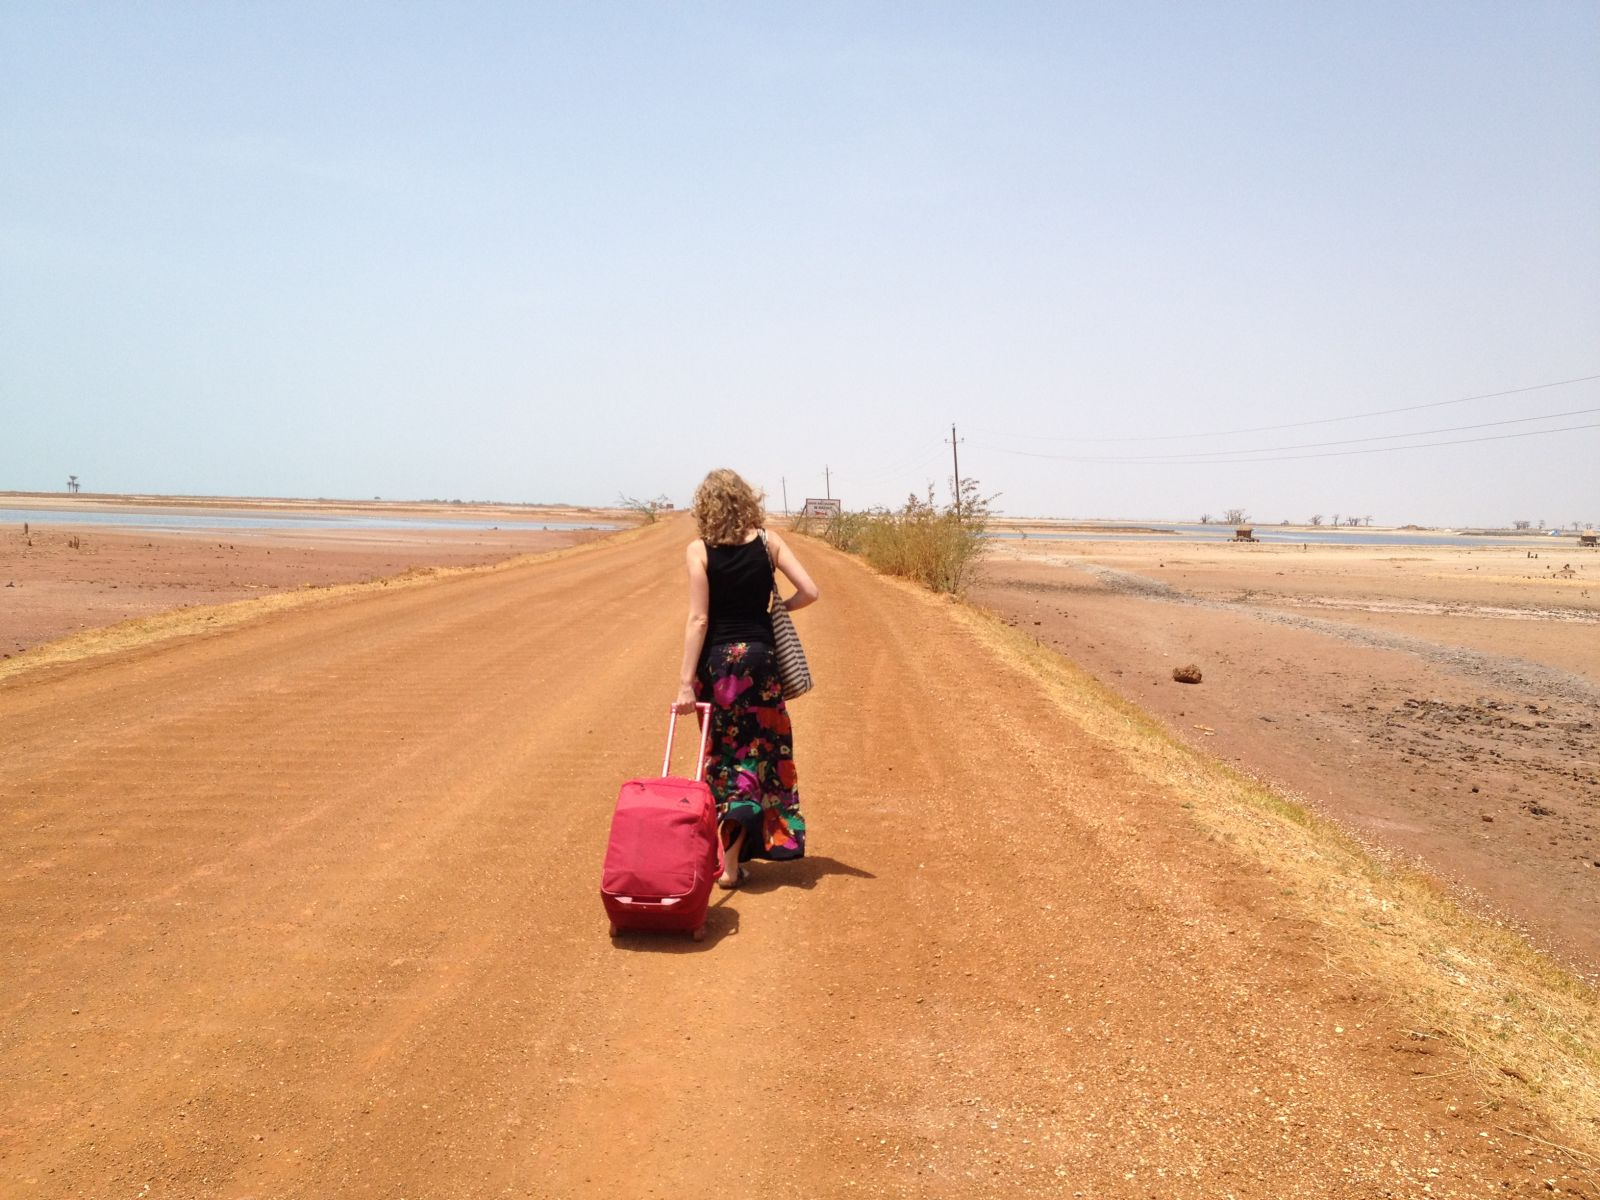 Girl dragging luggage on dusty road in Senegal, Africa.